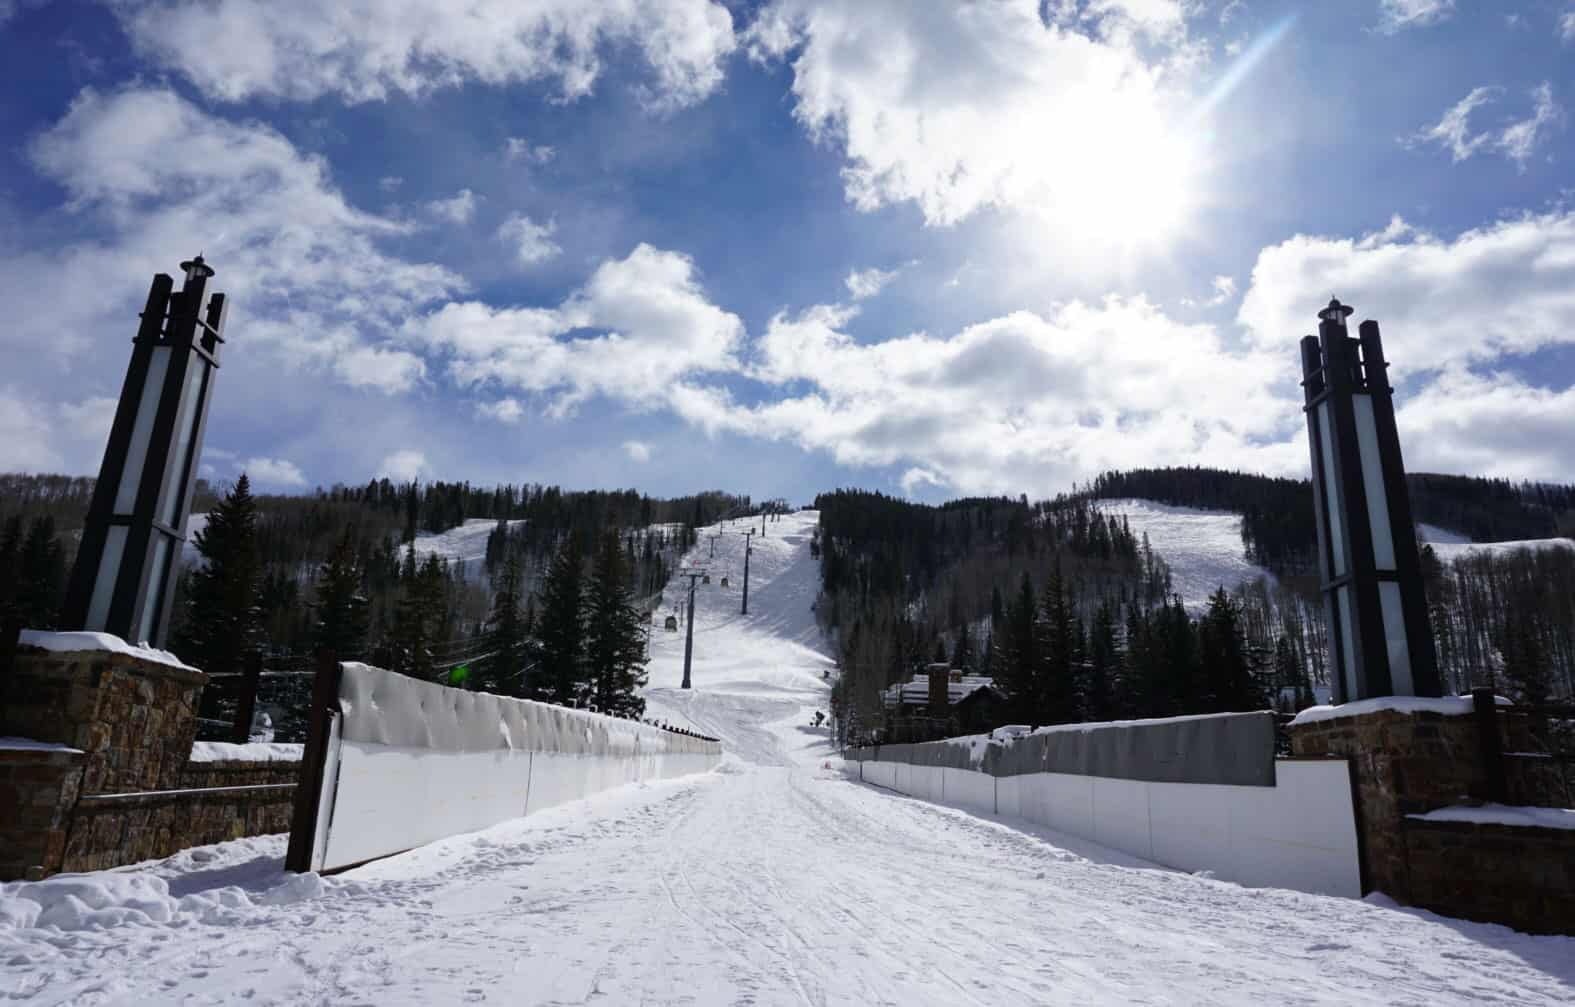 Vail mountain is opening early 2018-2019 ski season.